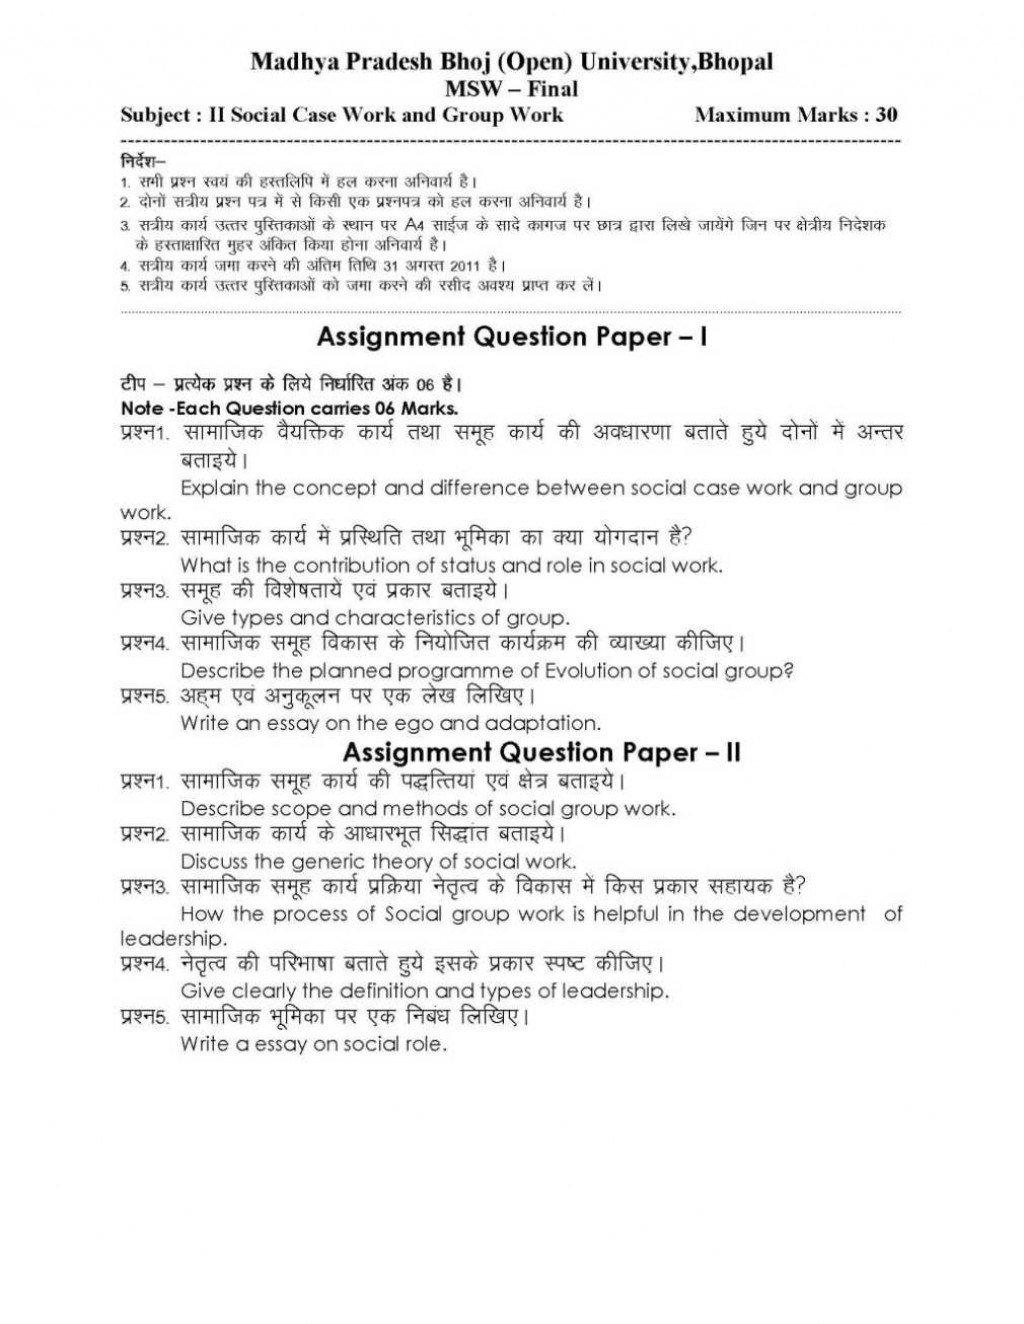 012 Bhoj University Bhopal Msw Definition Essays Surprising Essay Examples Friendship Define Writing Pdf Large